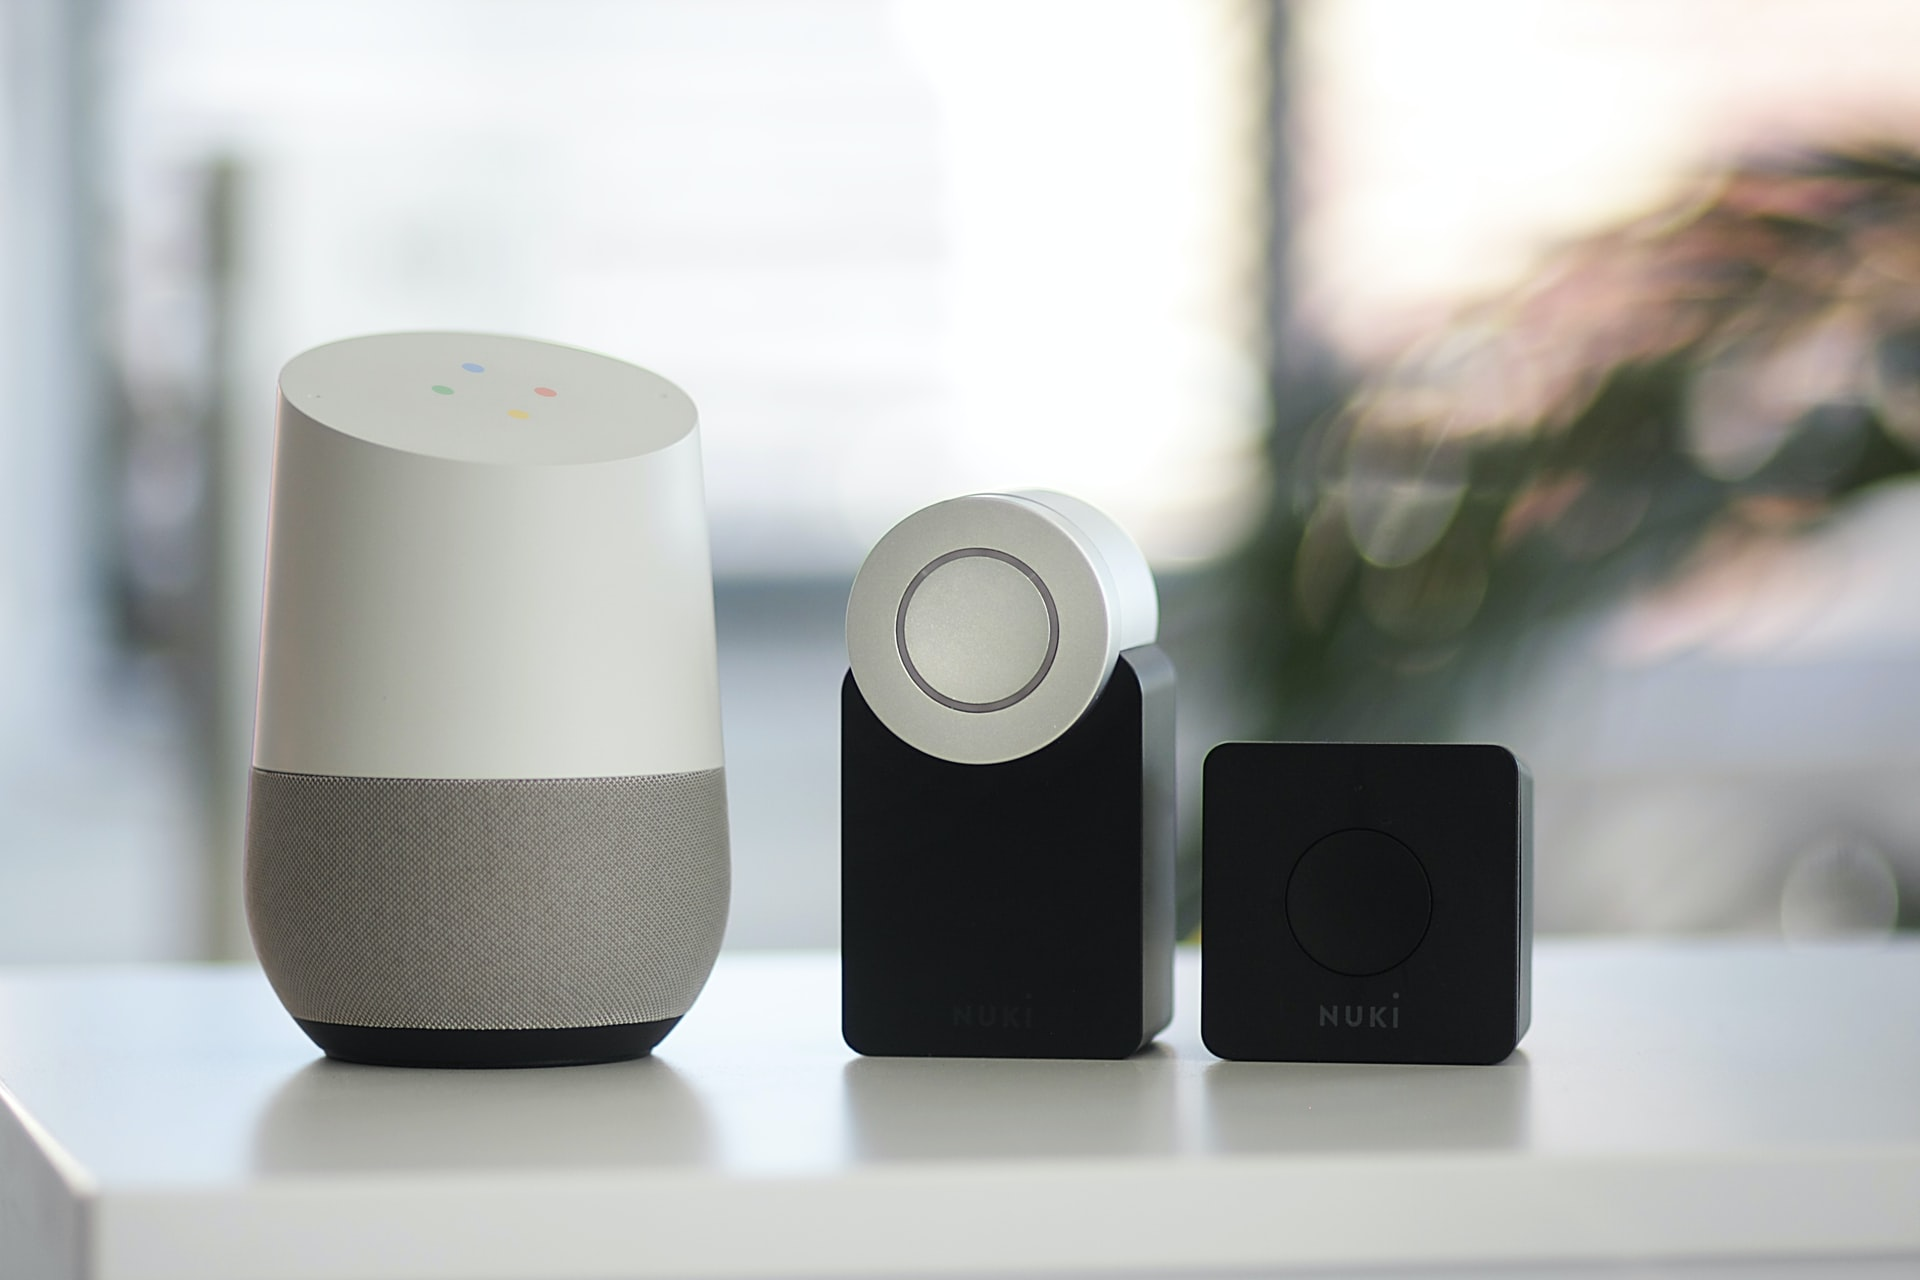 Global Smart Speaker Sales Rose 6% to 30 Million Units in Q2 2020